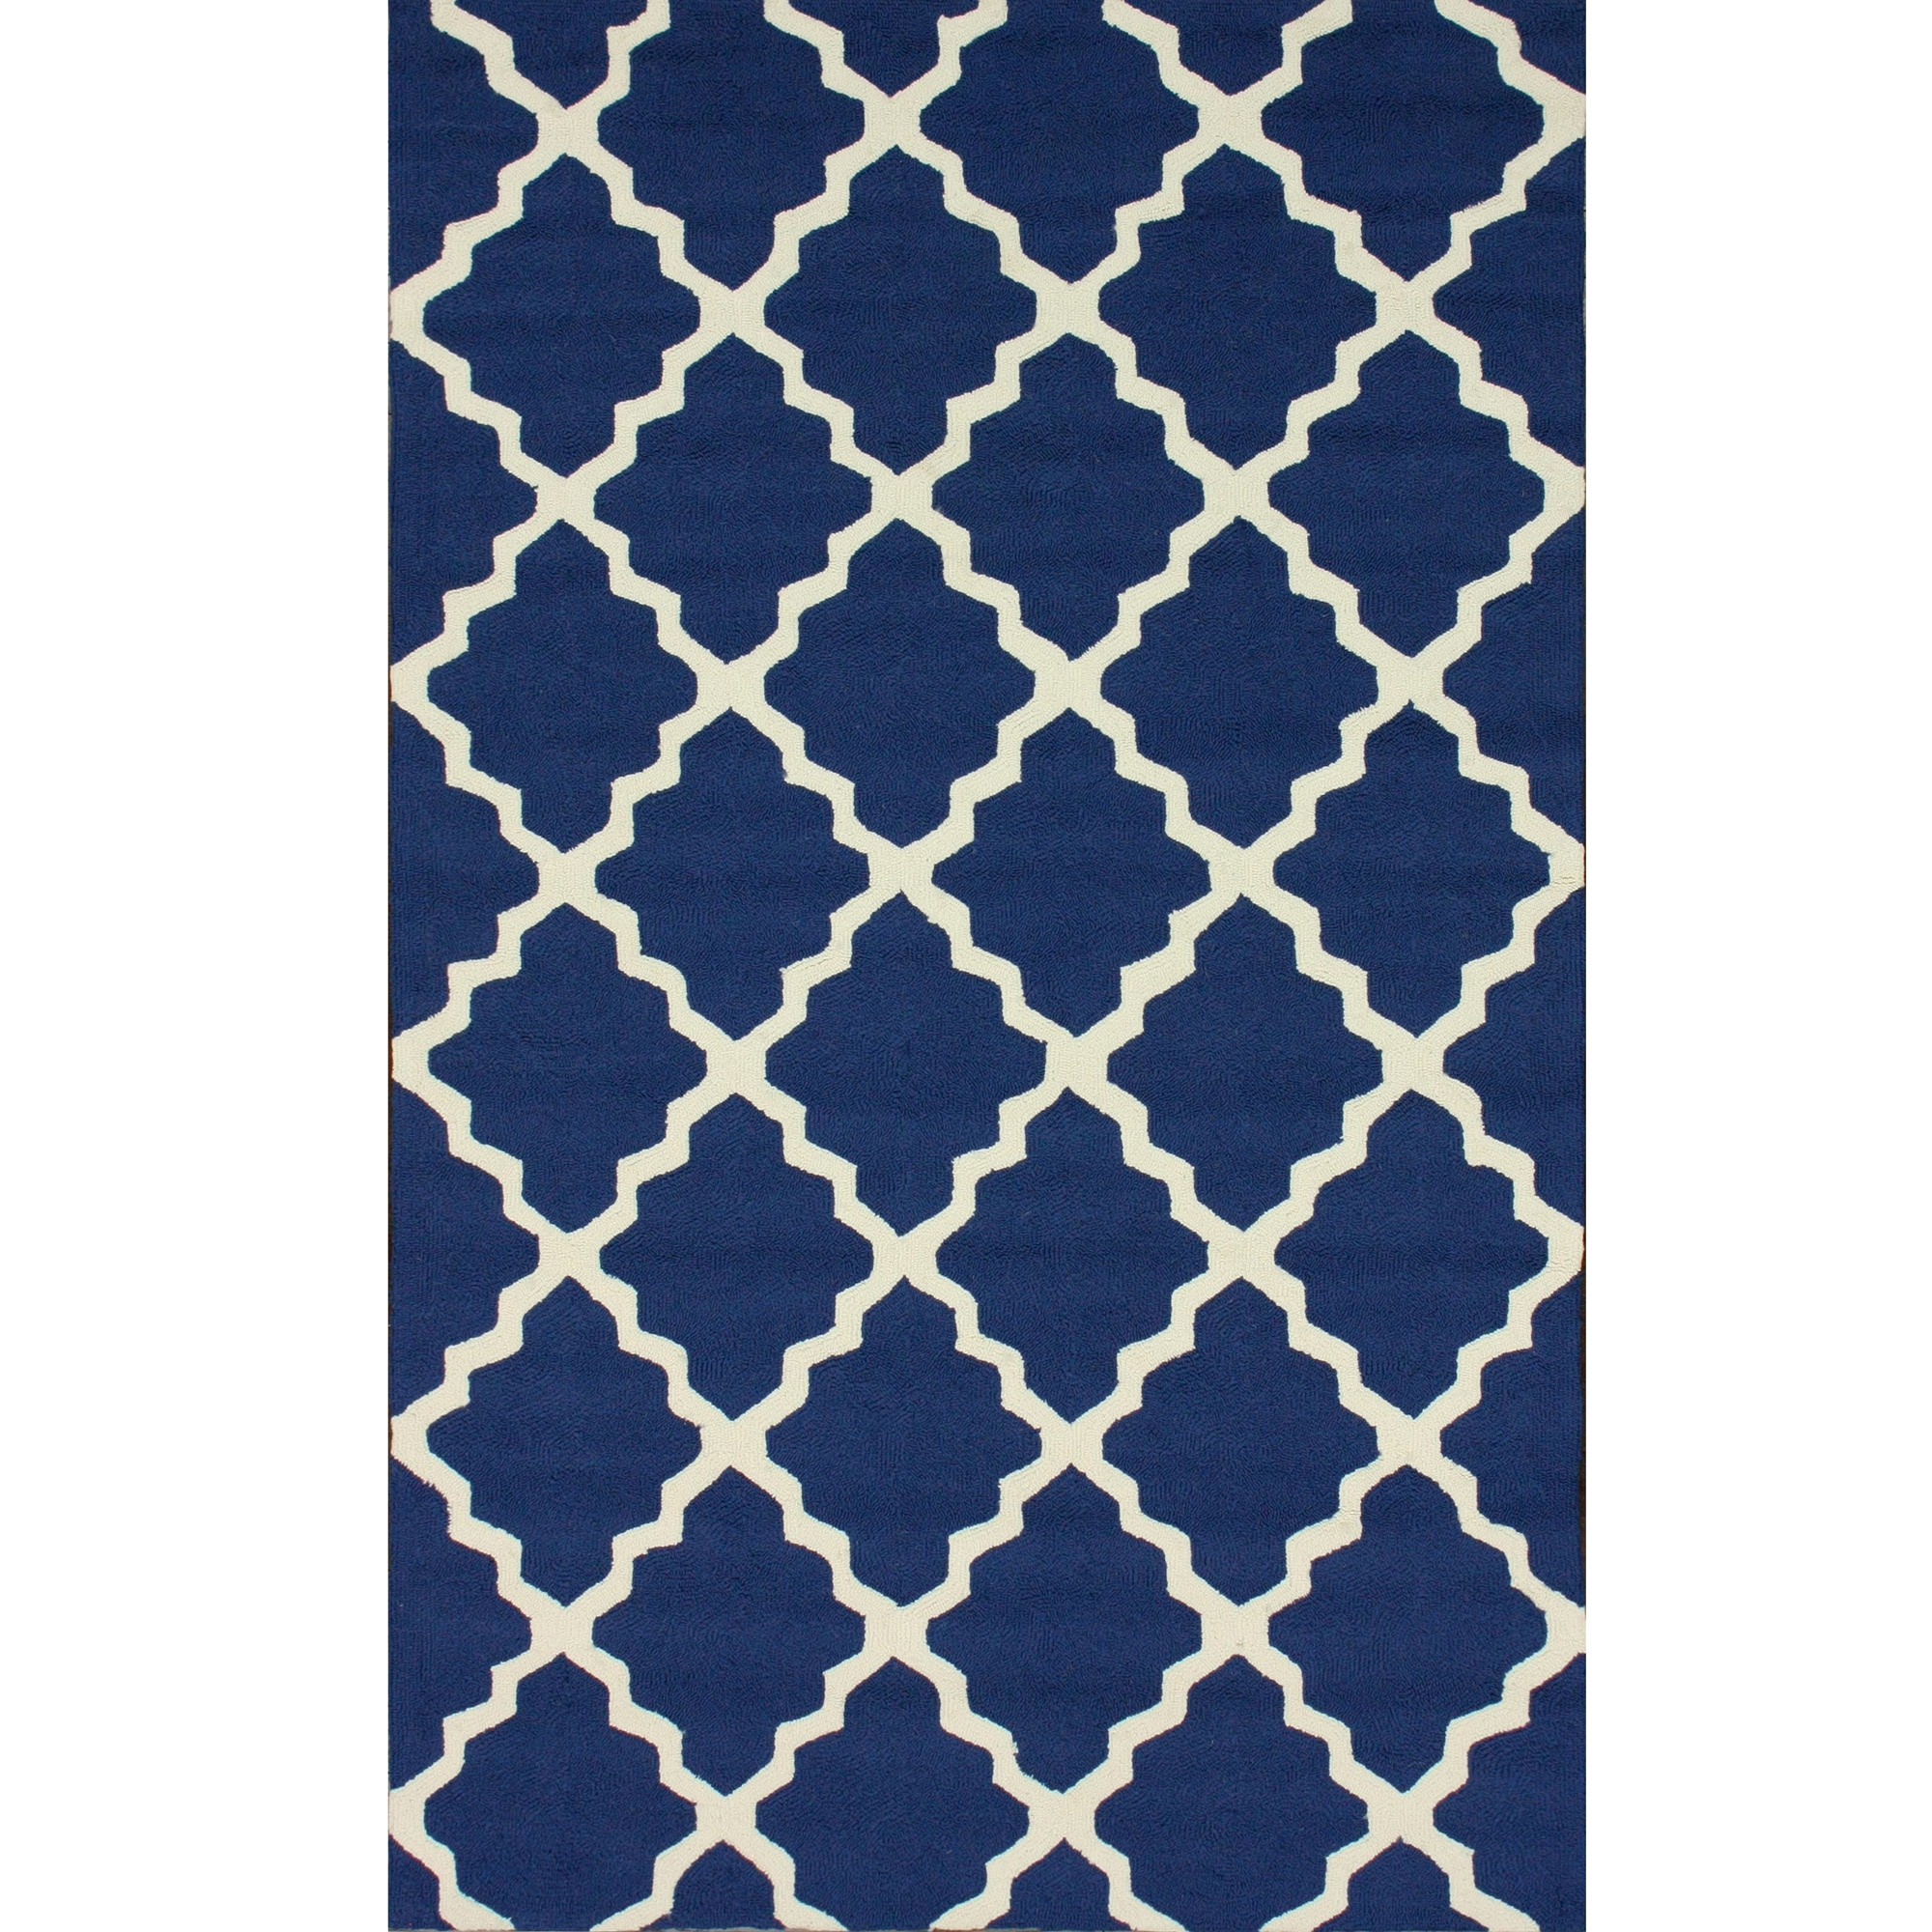 shop navy blue outdoor trellis outdoor rug 4ft x 6ft. Black Bedroom Furniture Sets. Home Design Ideas